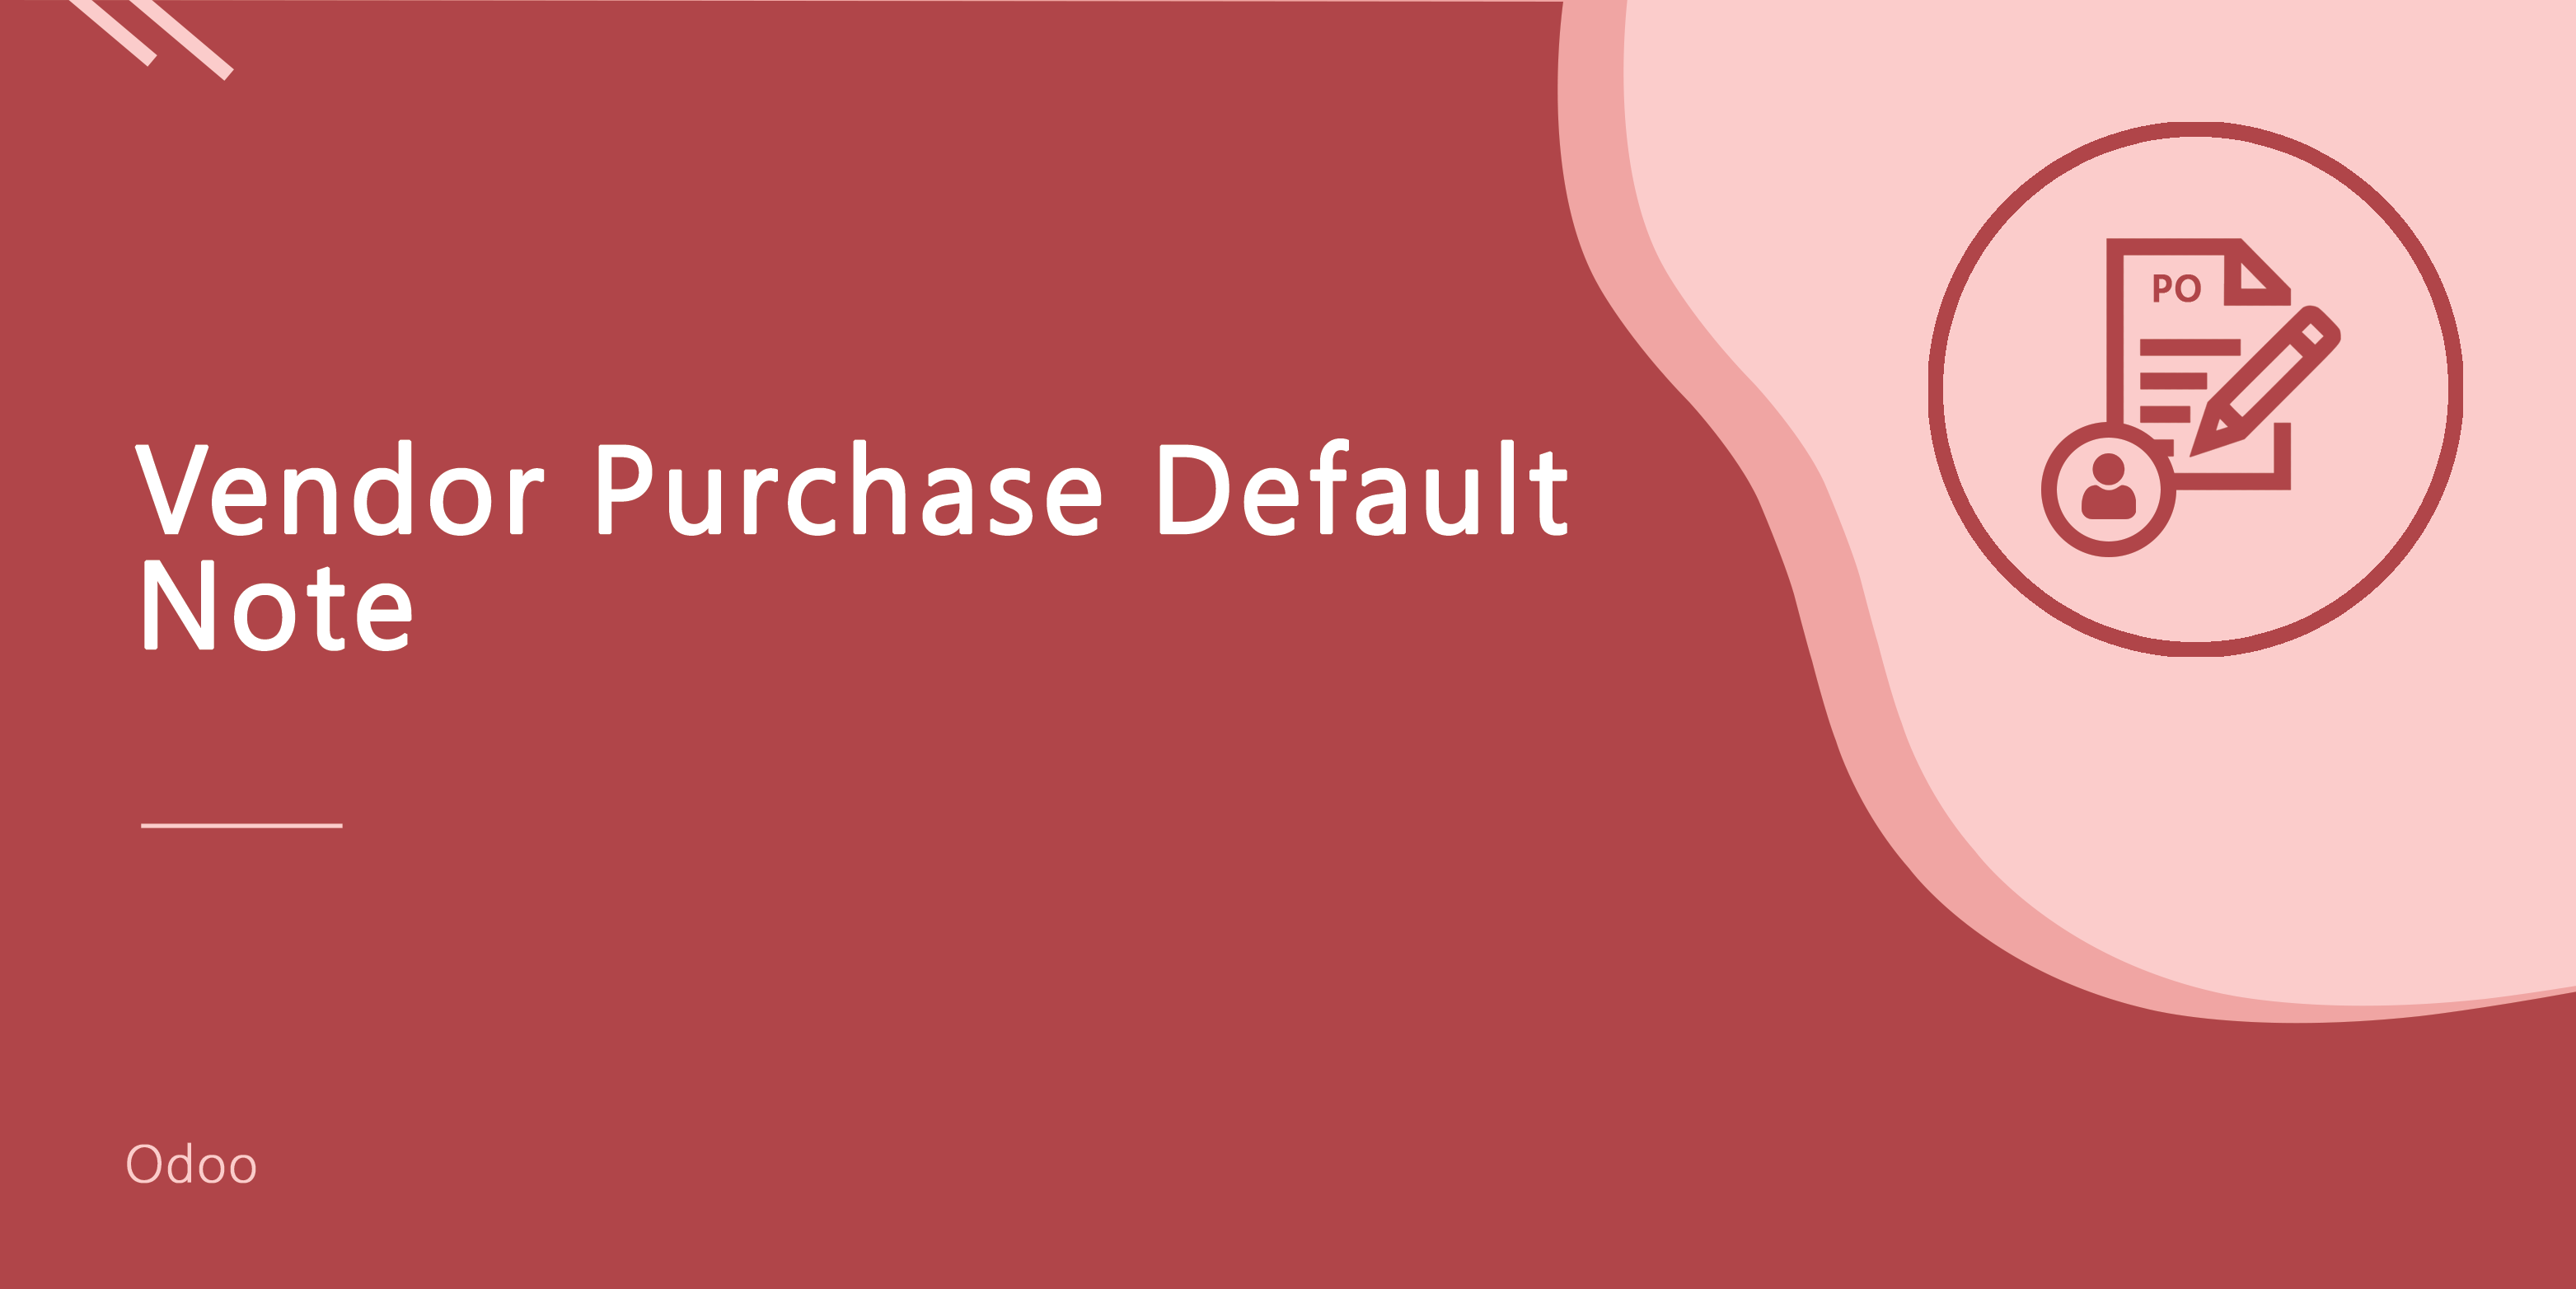 Vendor Purchase Default Note